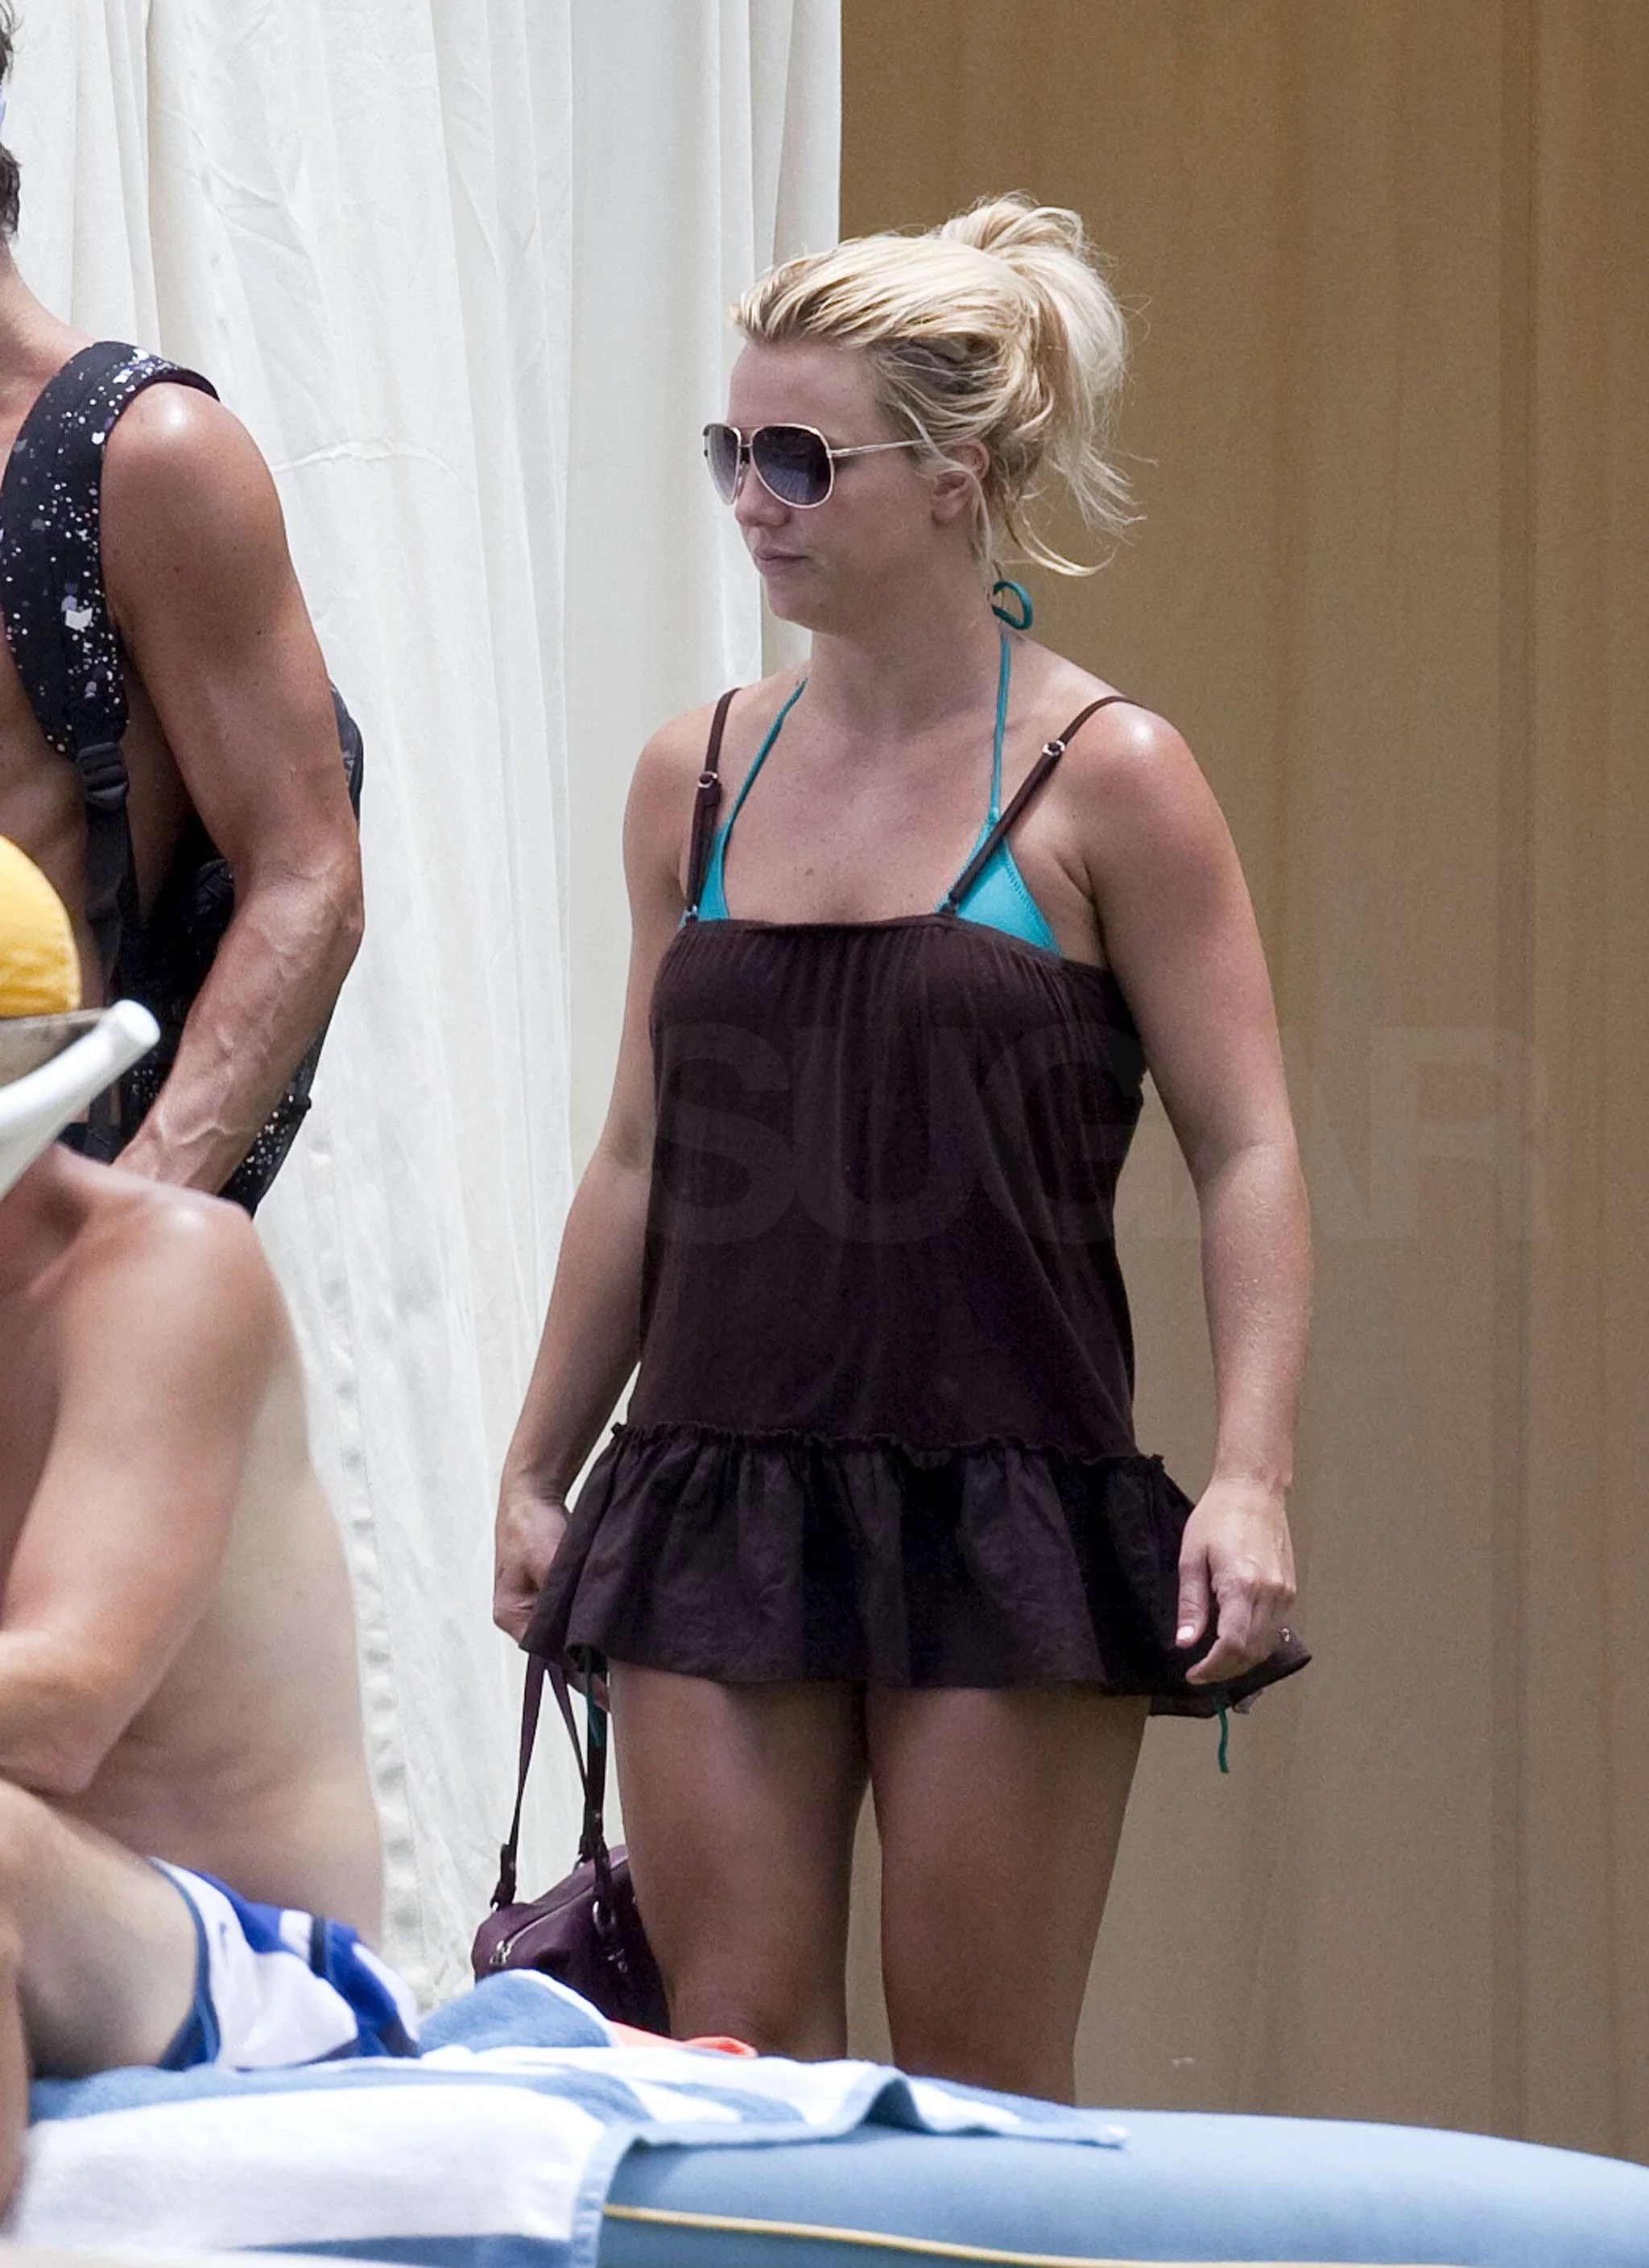 Pictures Of Britney Spears In A Bikini On Vacation With